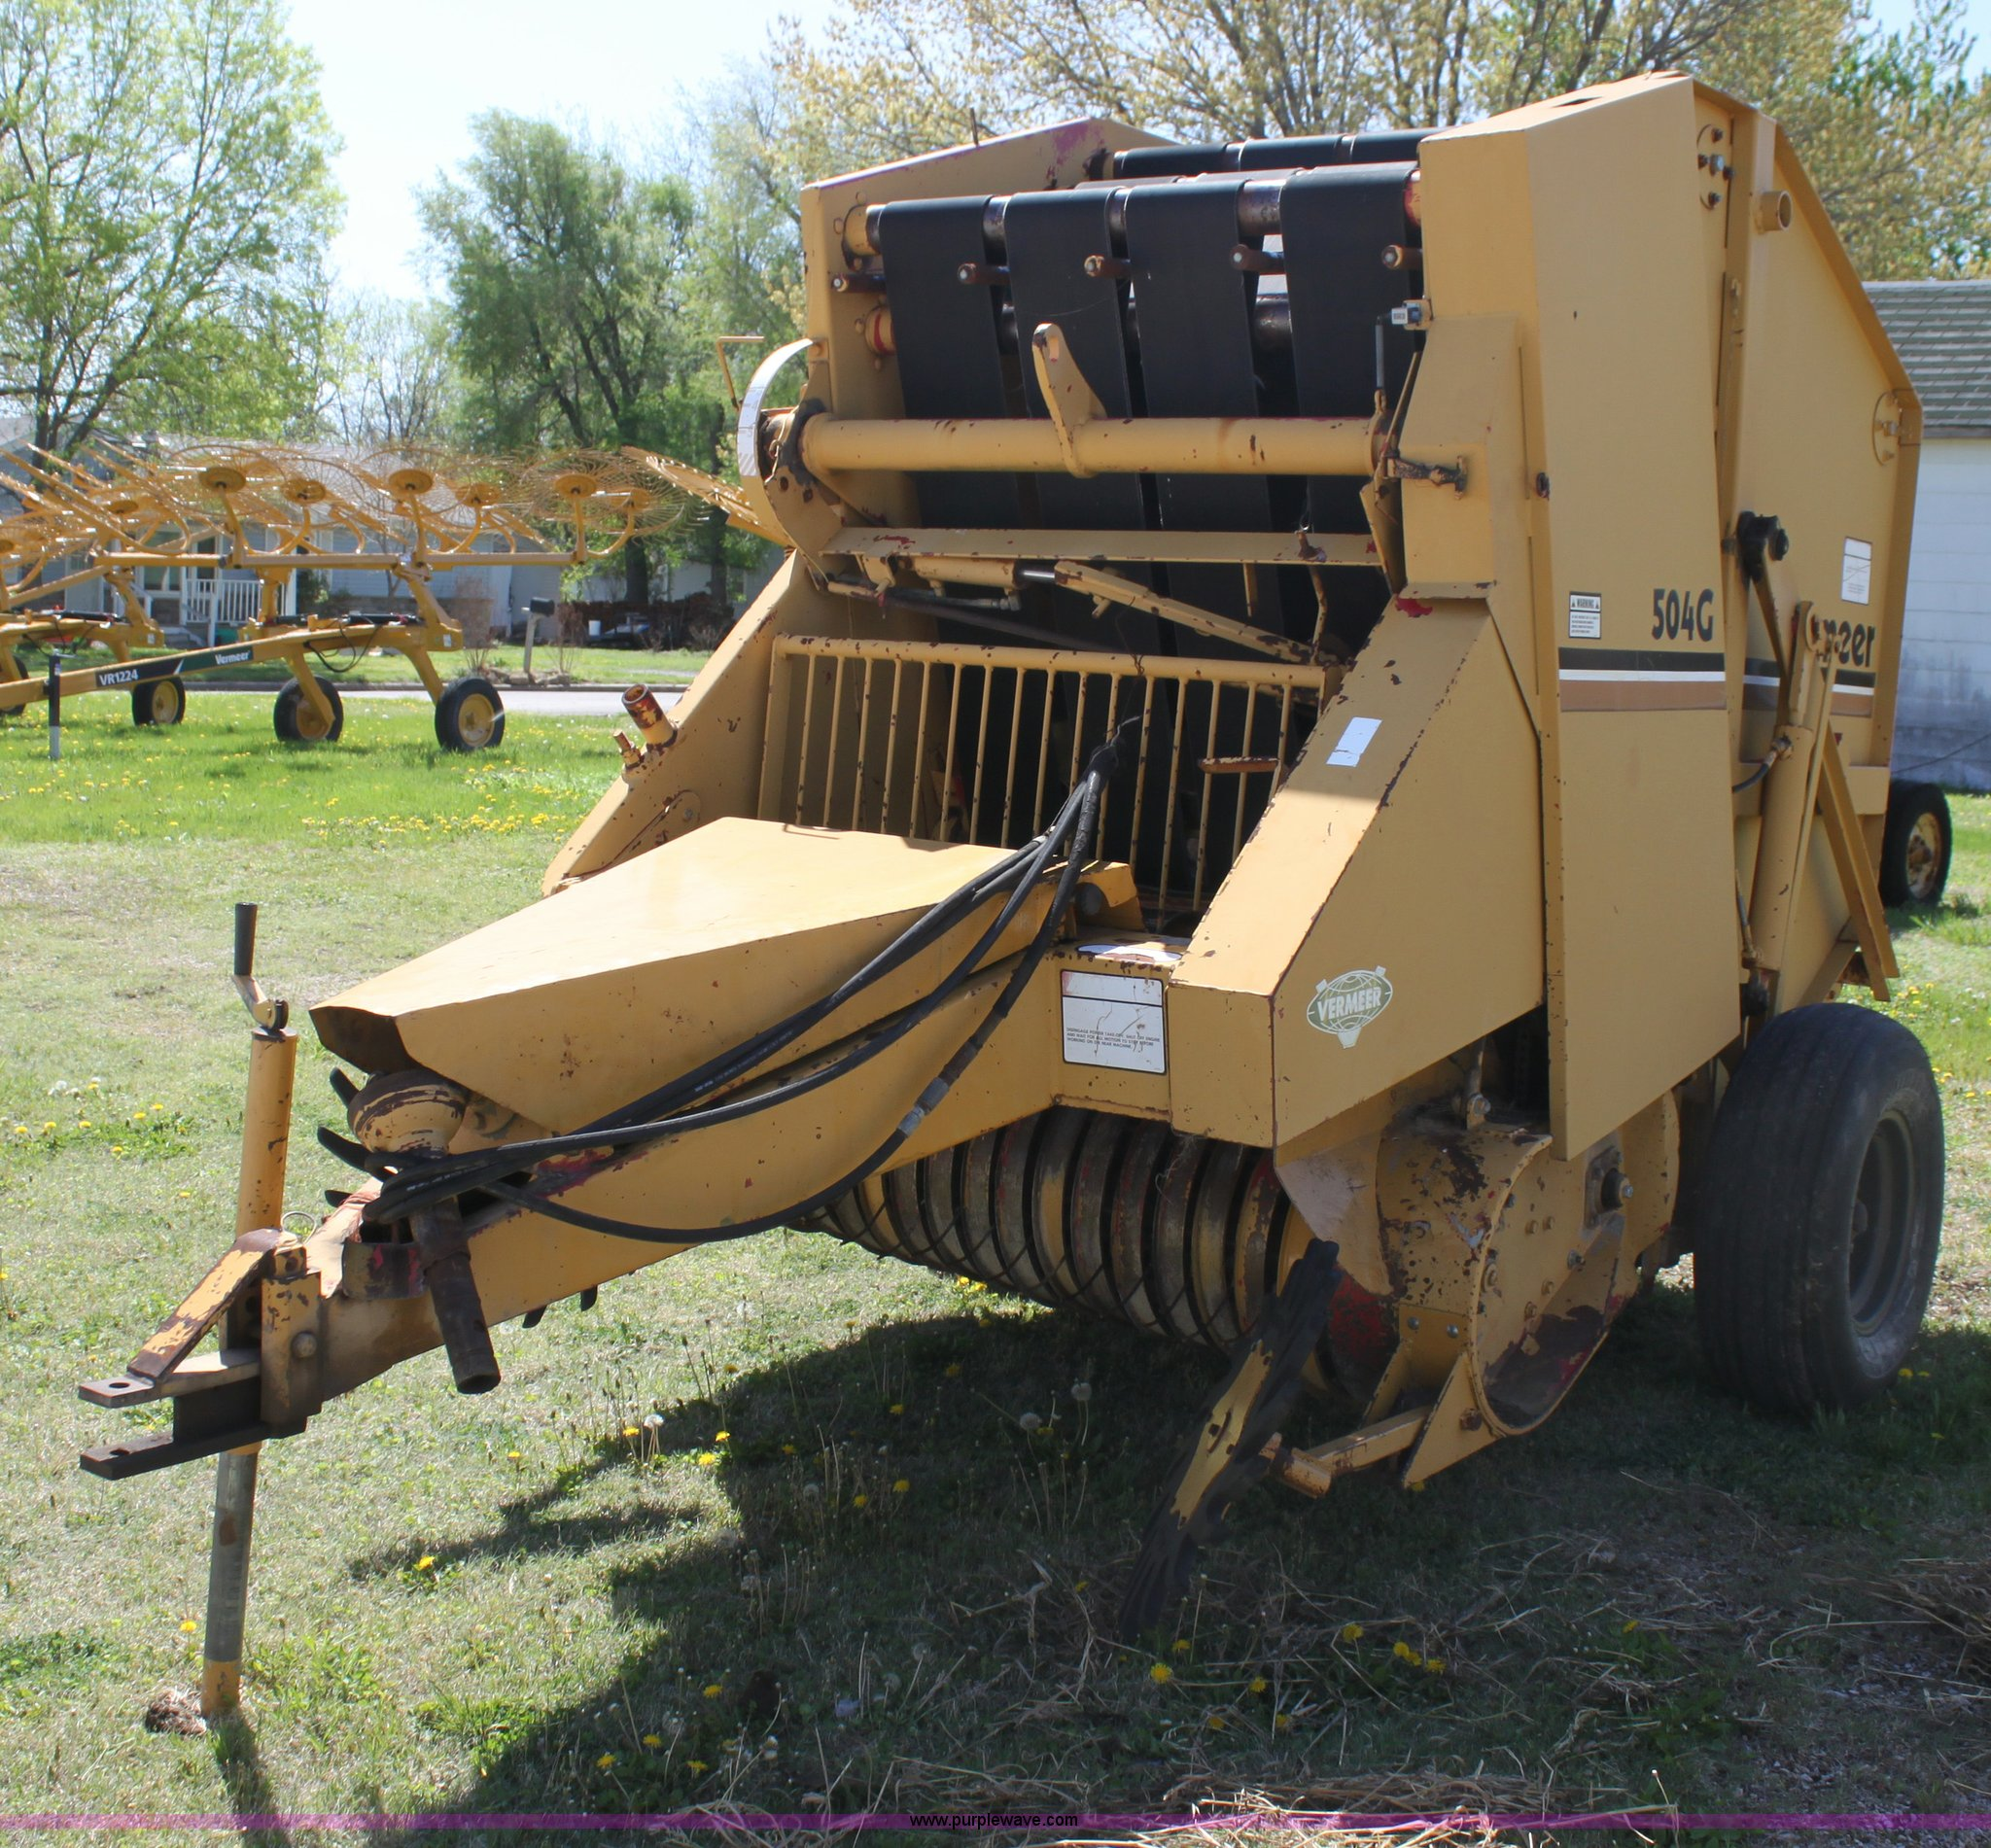 ... Vermeer 504G round baler Full size in new window ...